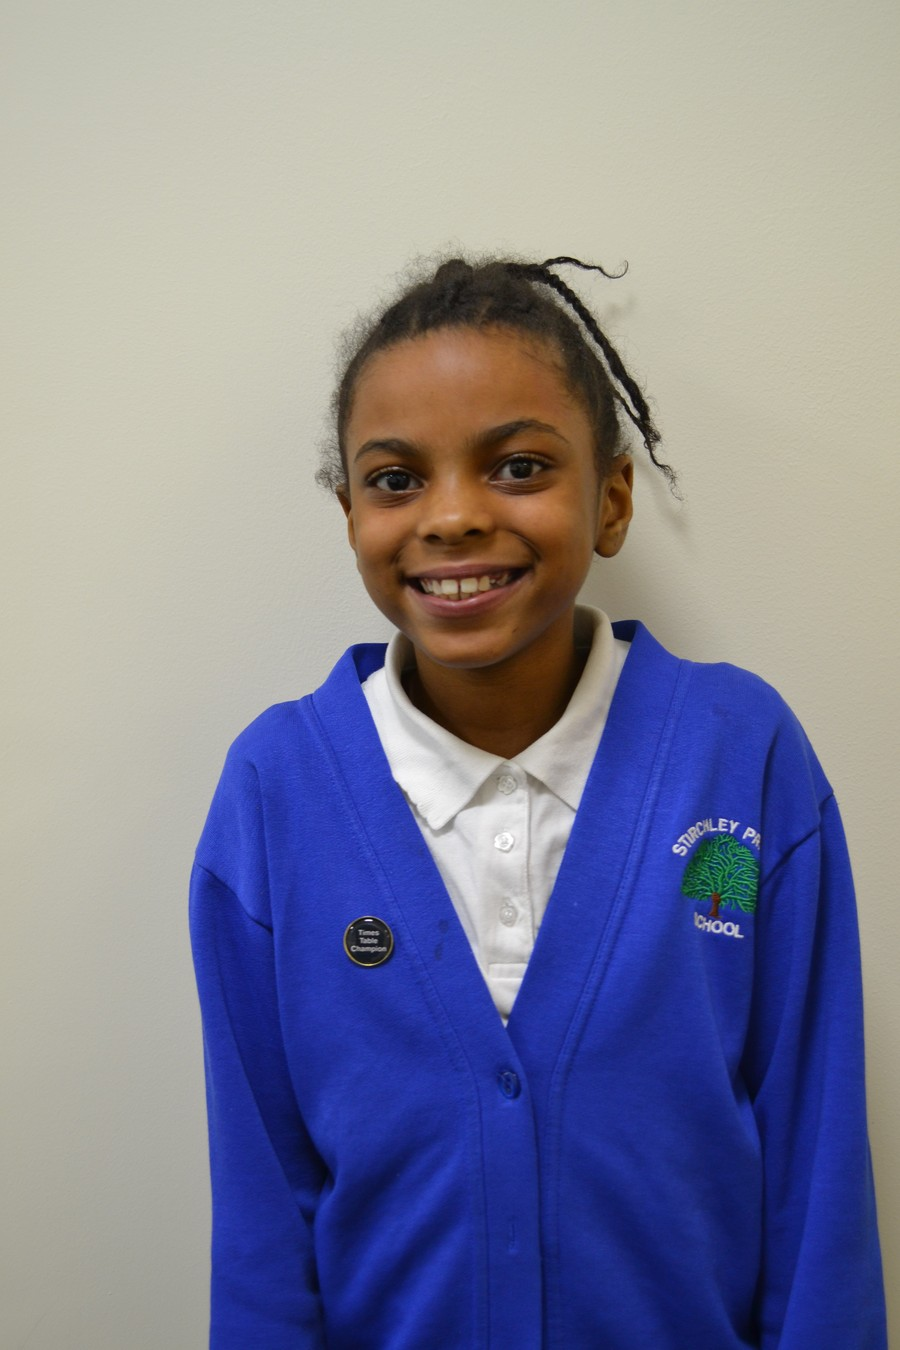 Well Done Lamia!